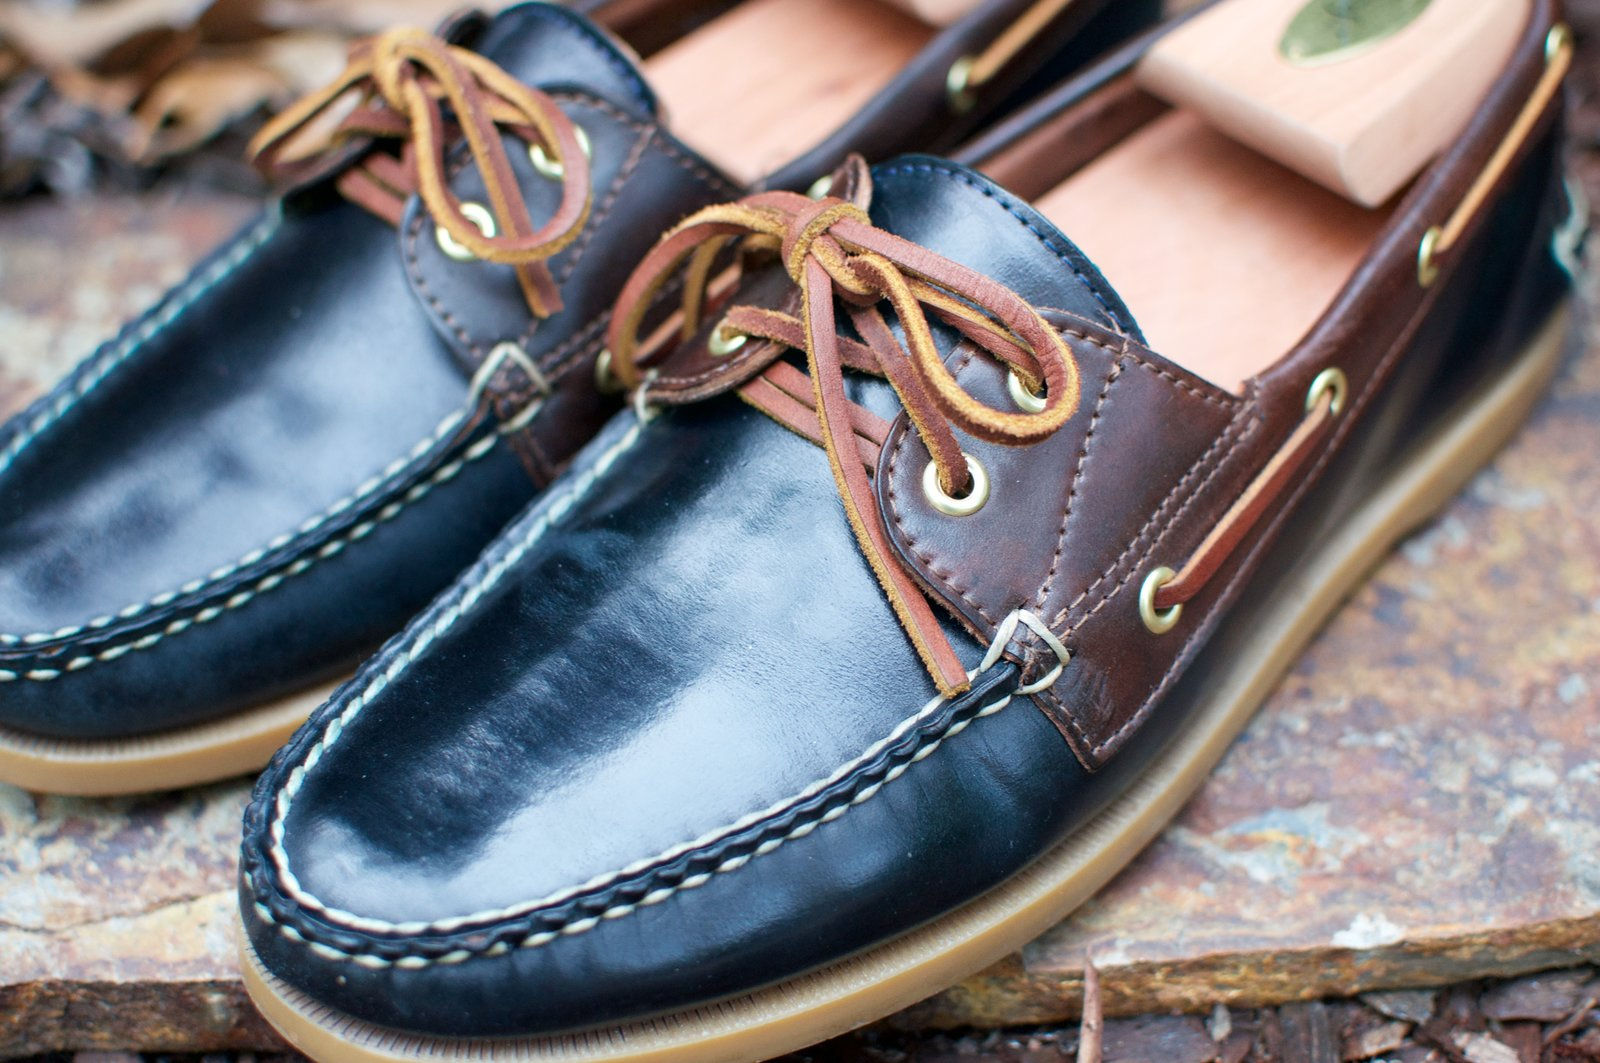 Rancourt Navy and Brown Shell Cordovan Boat Shoes - 2020-07-31 - 2.jpg